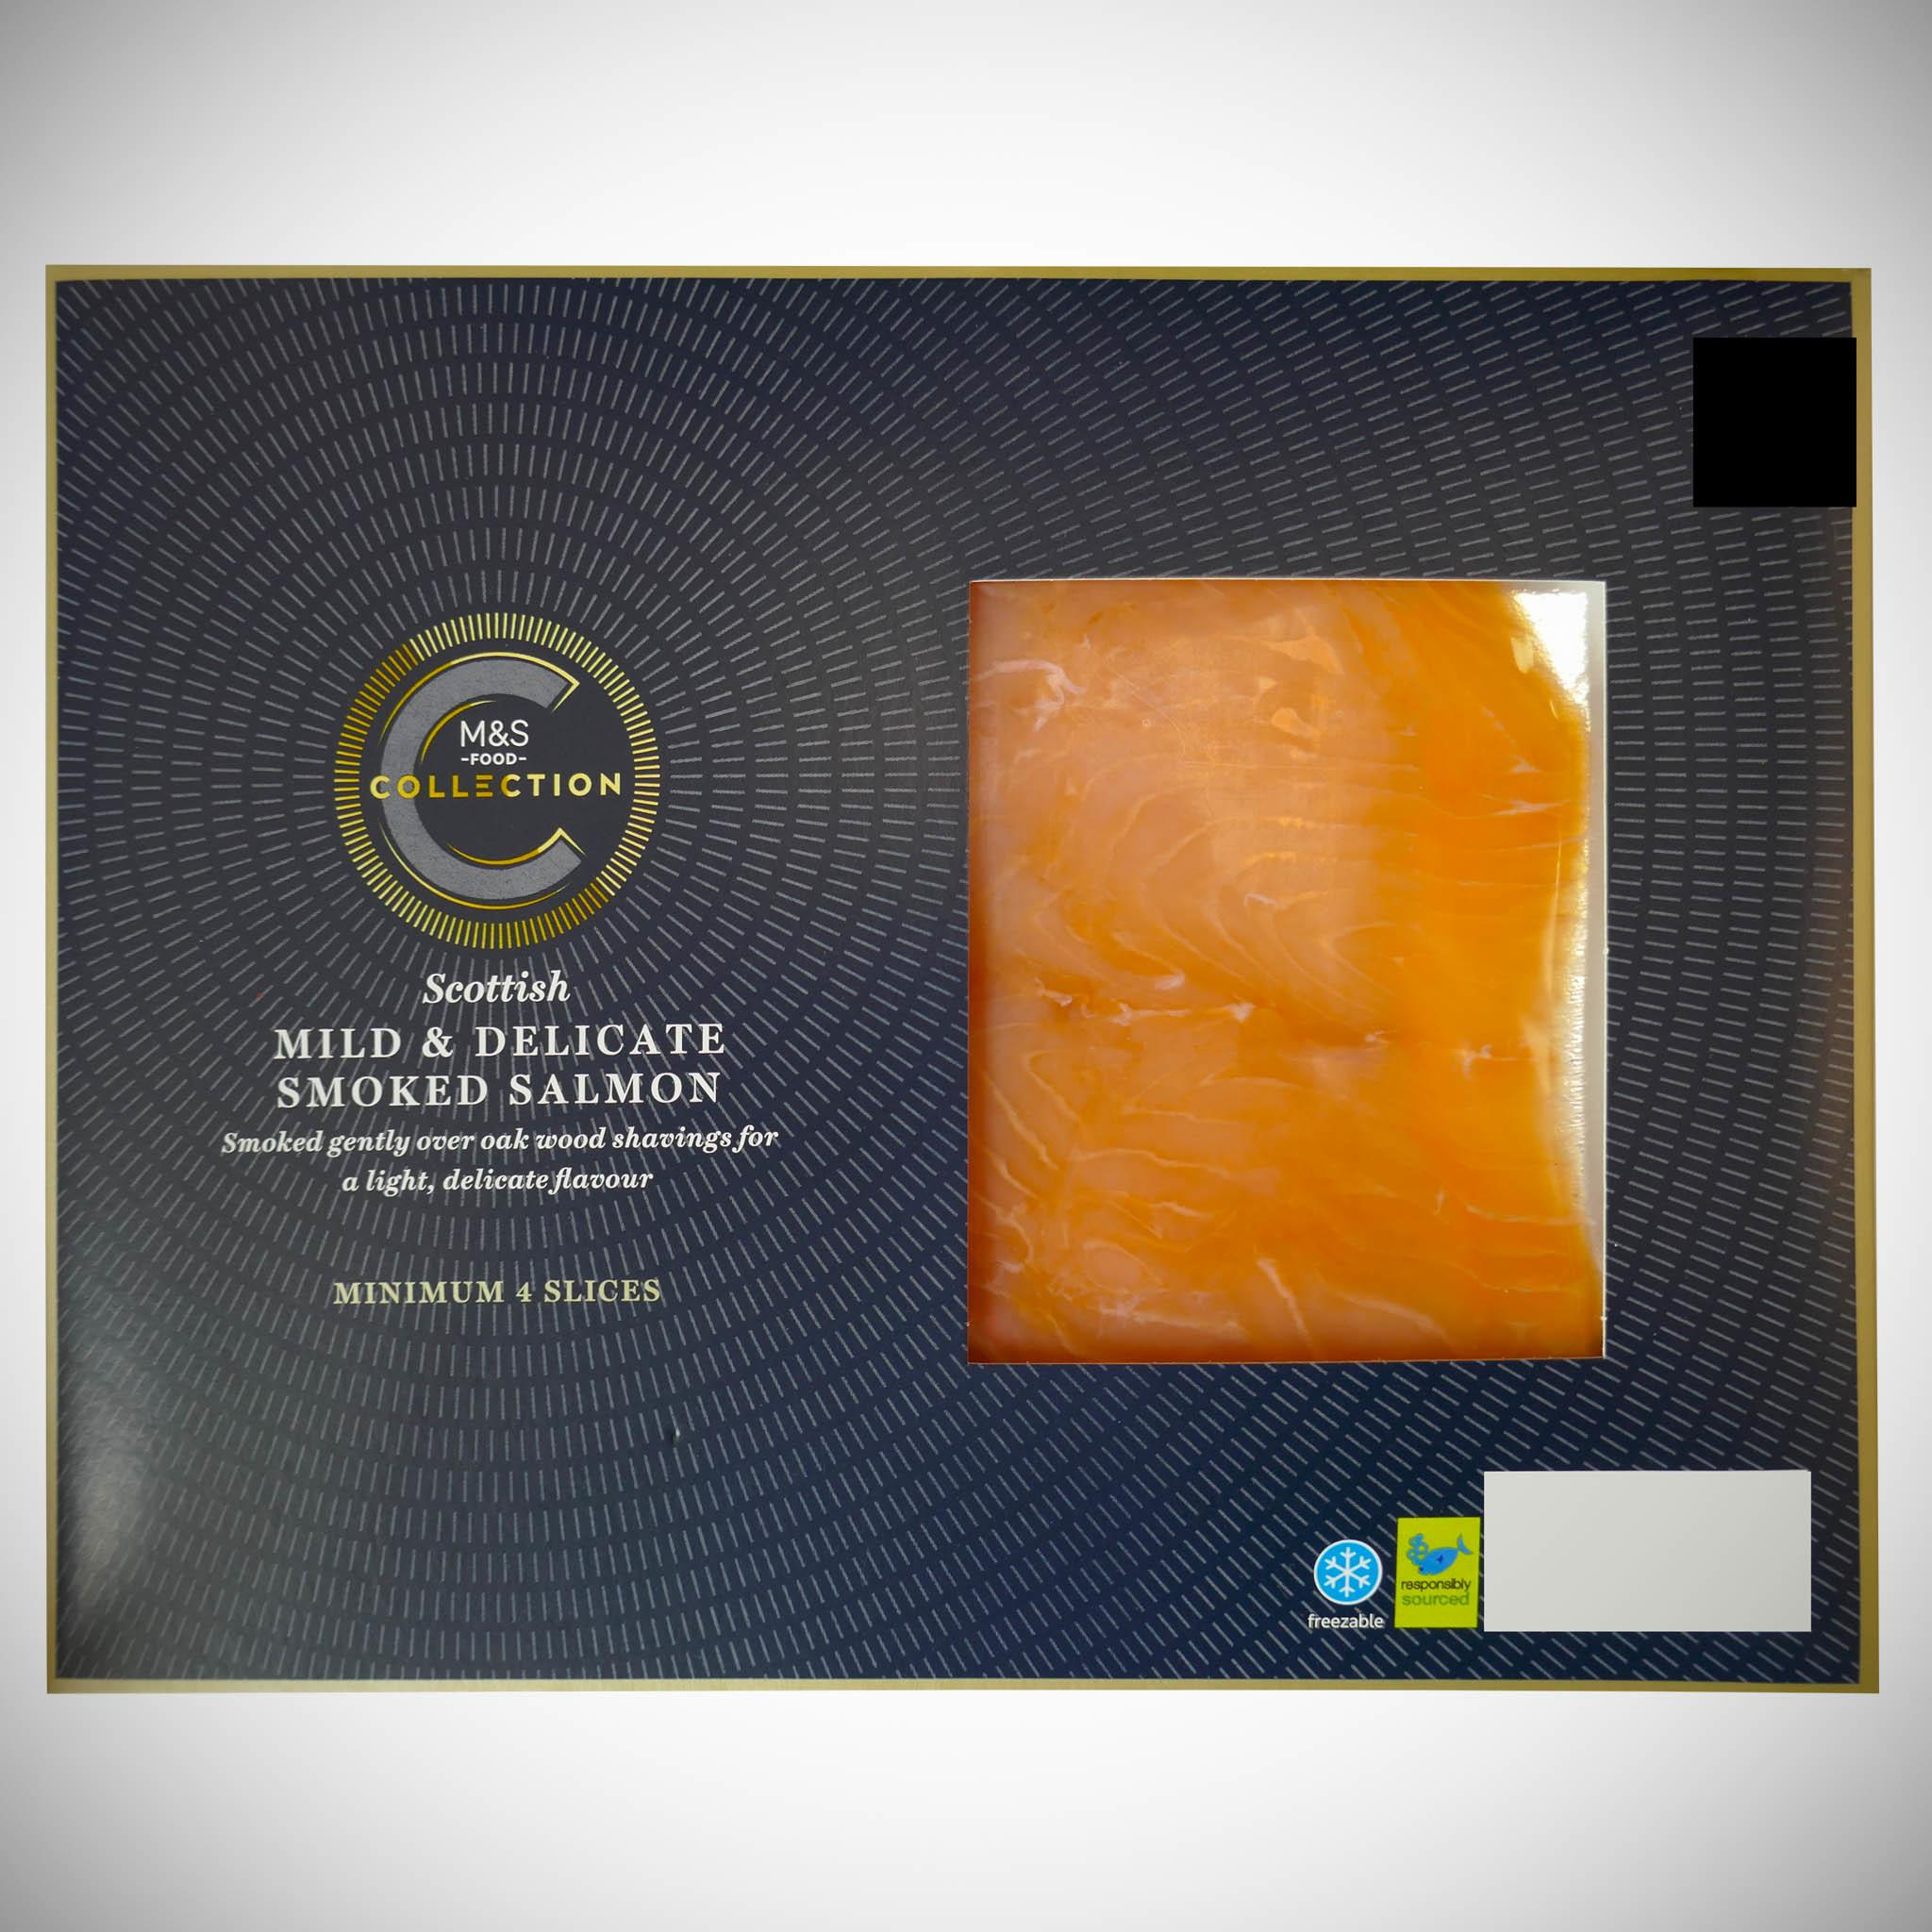 Mild & Delicate Scottish Lochmuir Smoked Salmon 100g